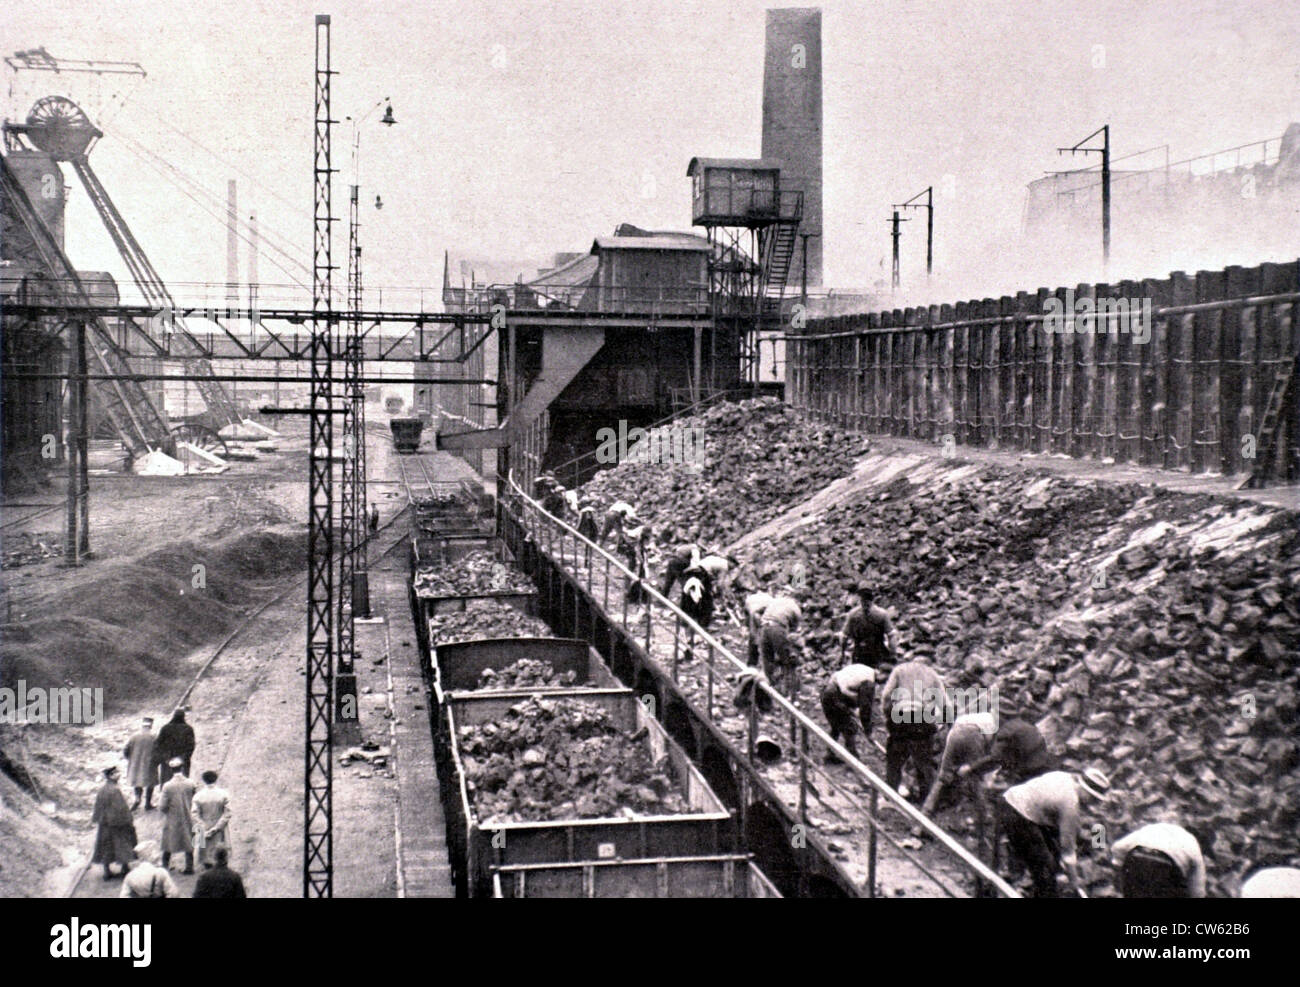 French occupation of the Ruhr region, at the cokeworks of Westerholt, in 1923 - Stock Image